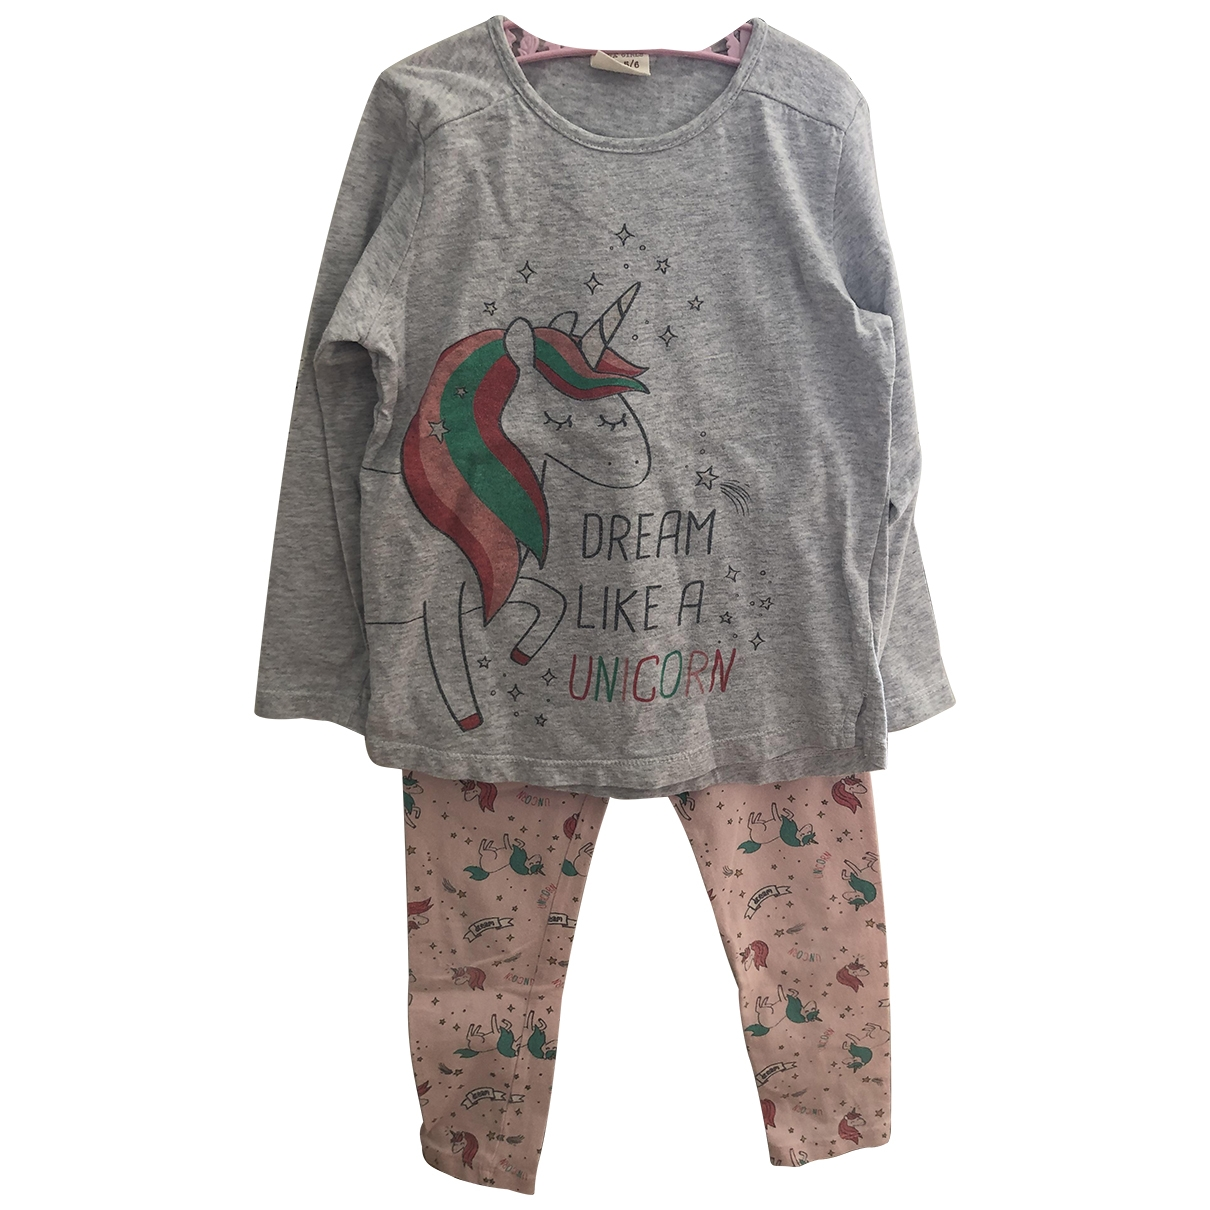 Zara \N Pink Cotton Outfits for Kids 5 years - up to 108cm FR